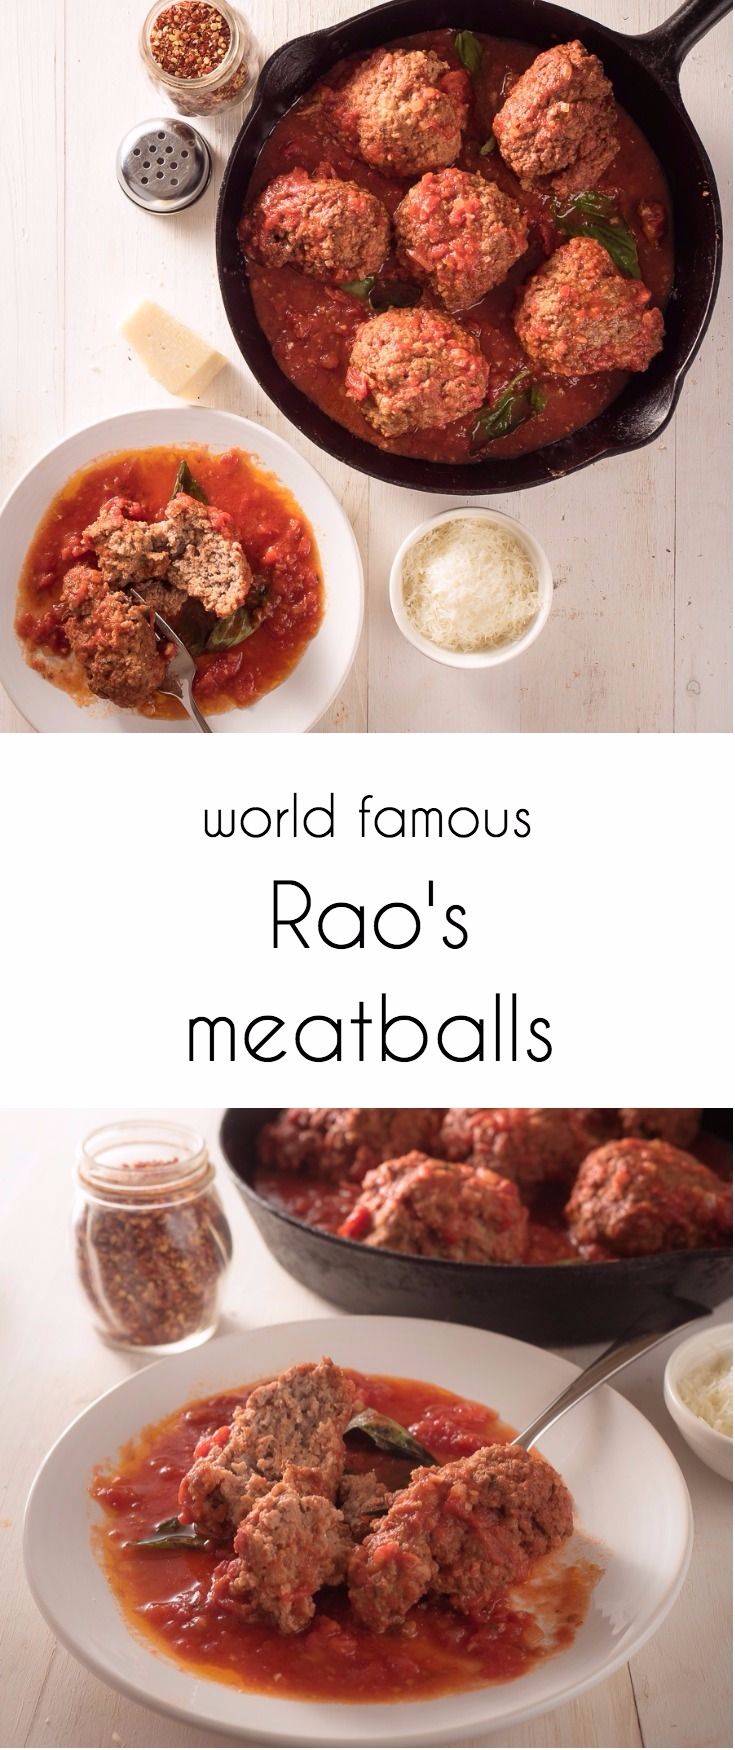 Raos meatballs in marinara are world famous for a reason